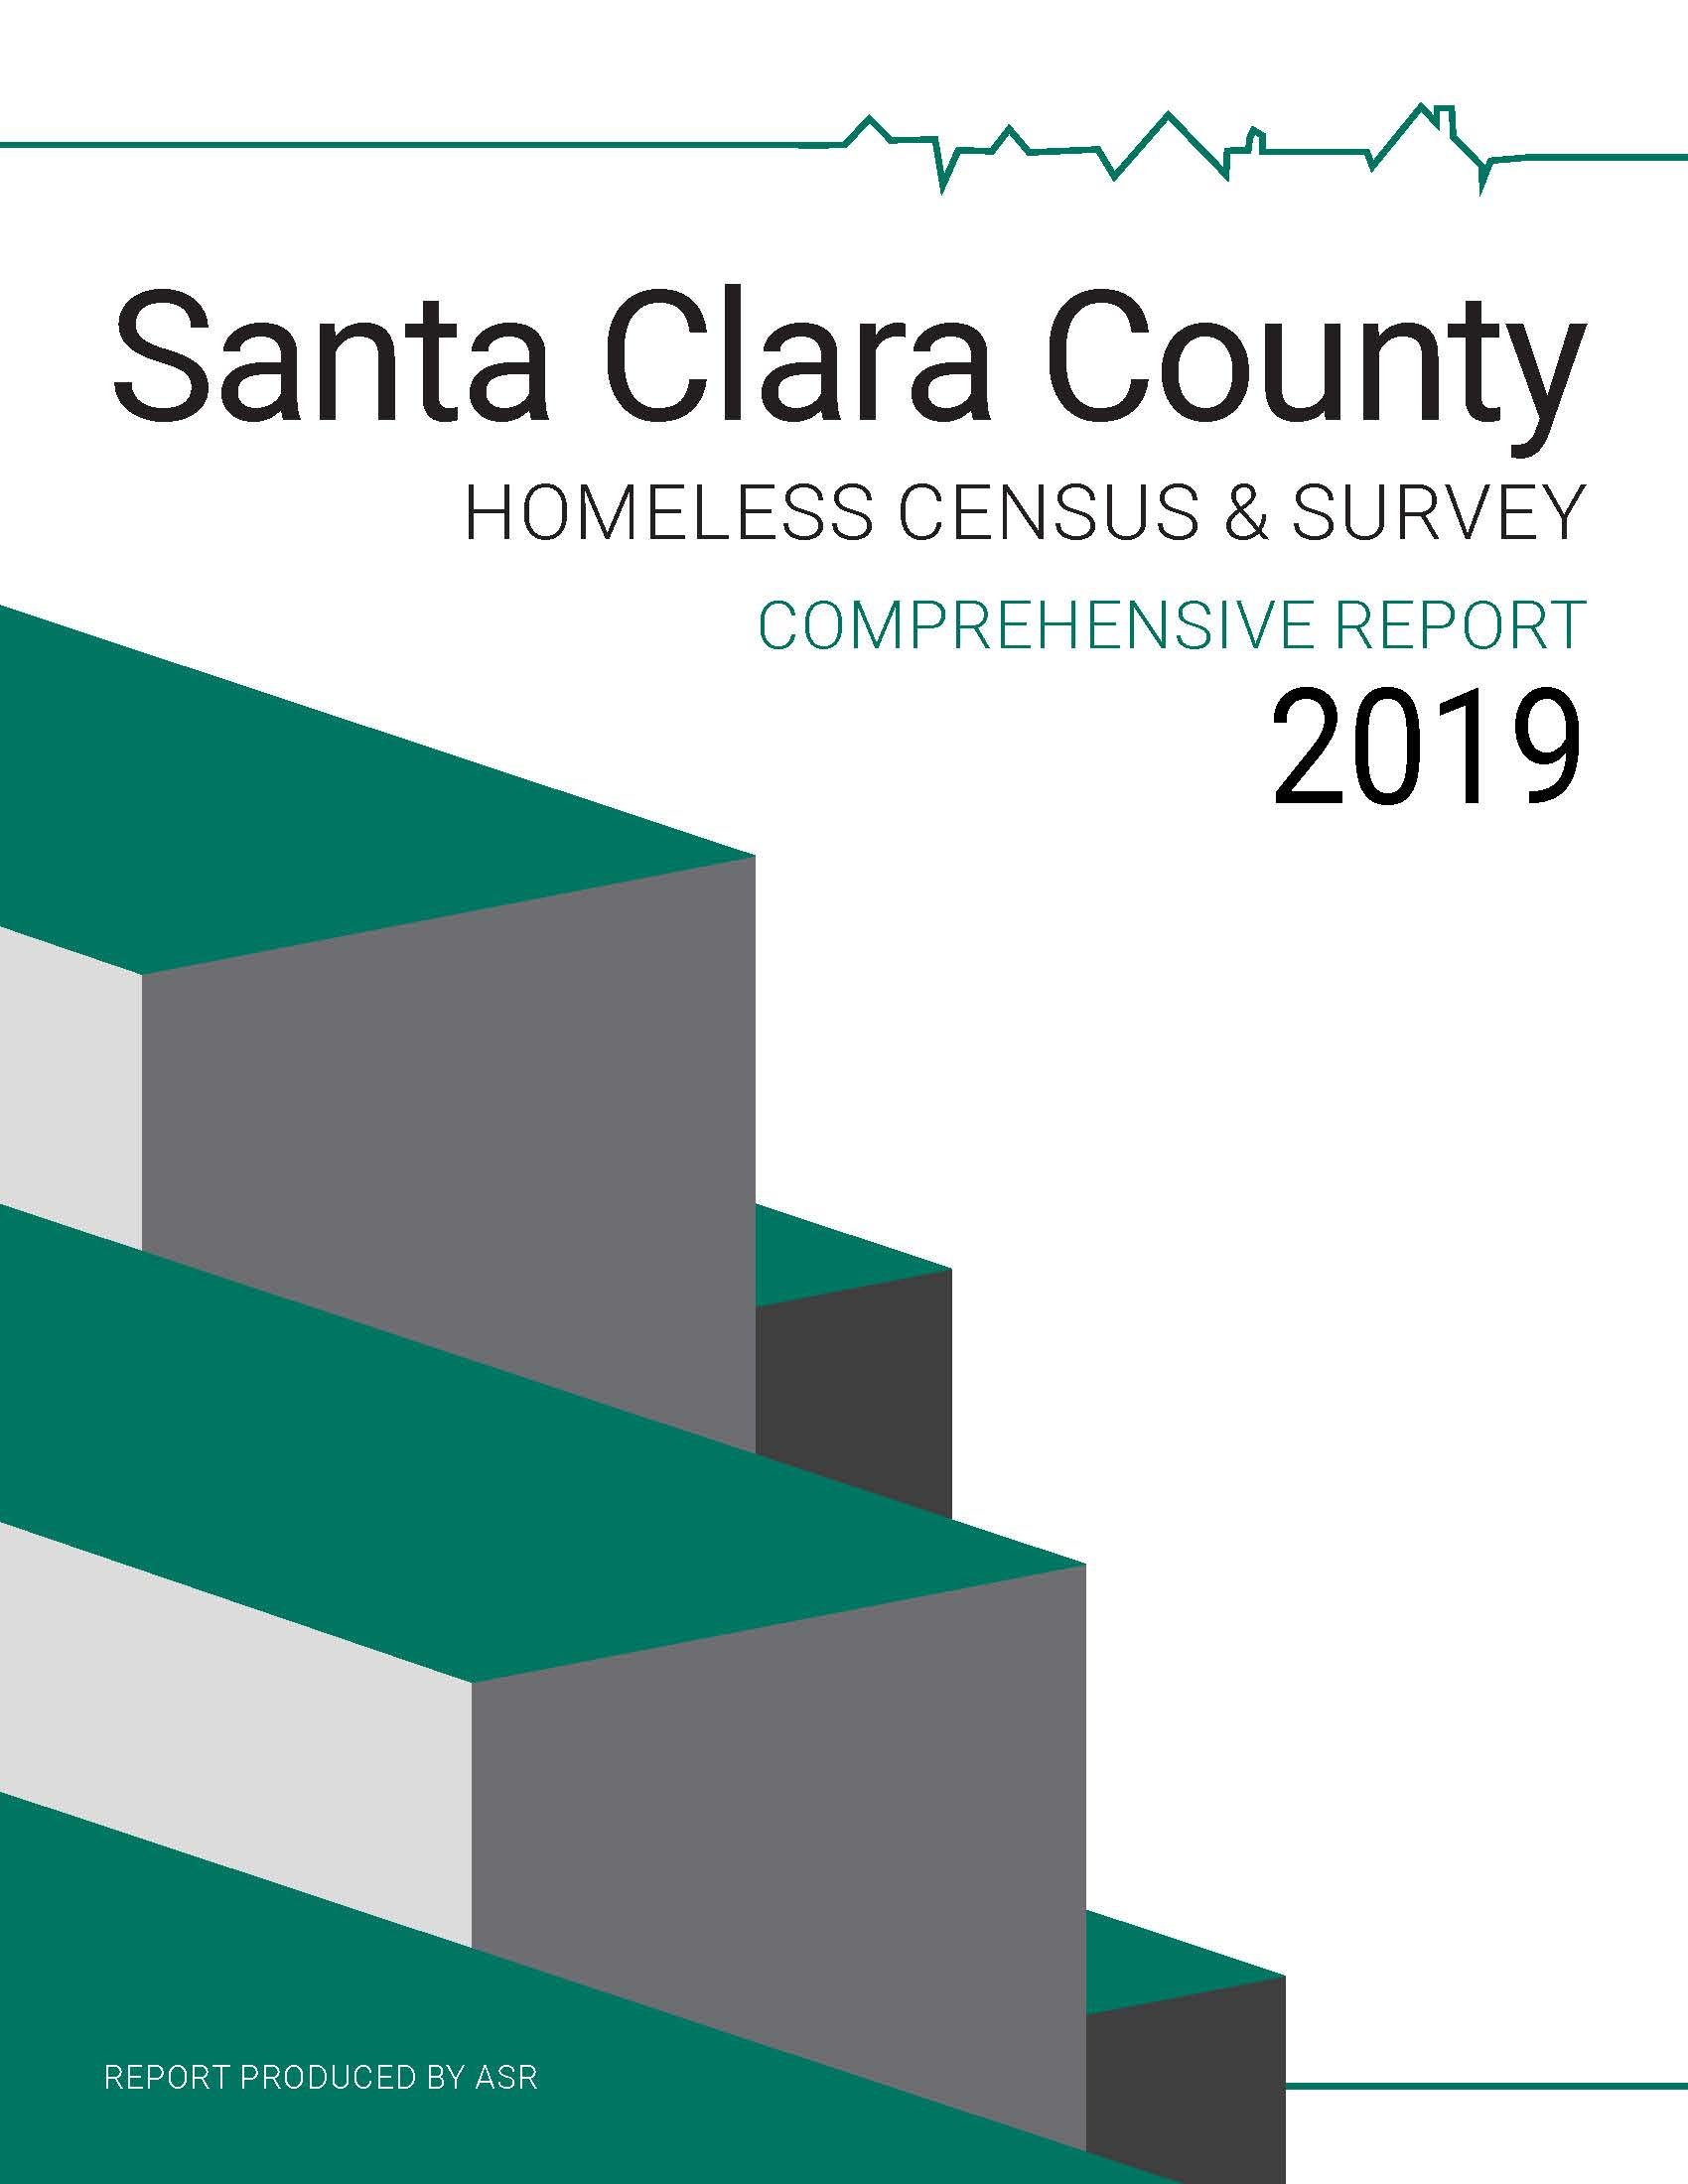 Homeless Census and Surveys